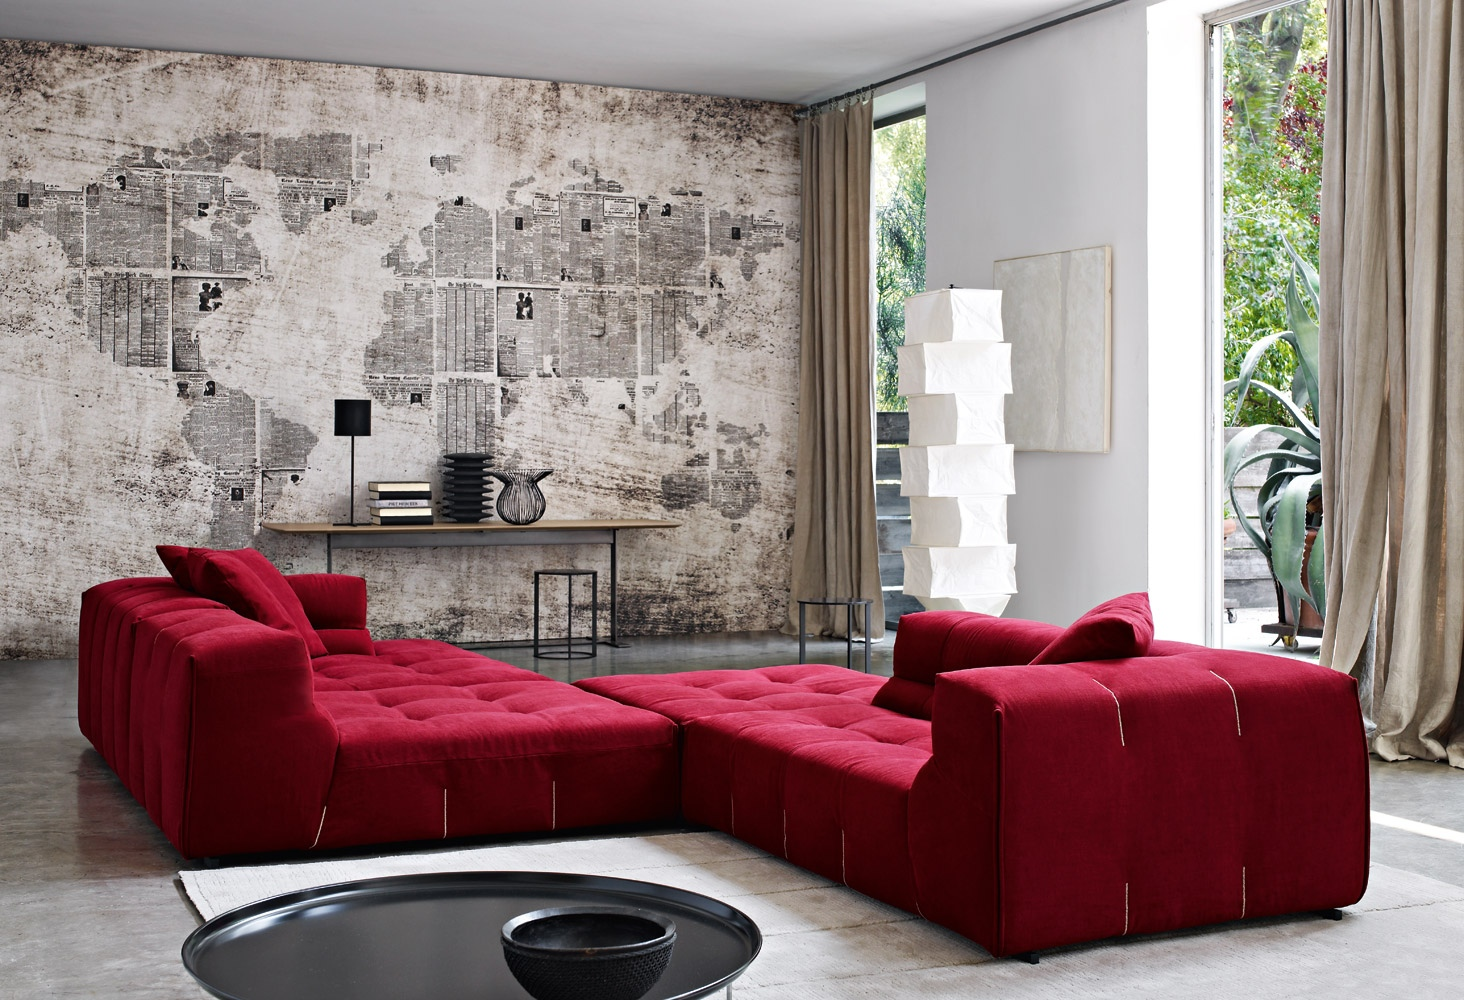 Red chaise lounge Interior Design Ideas